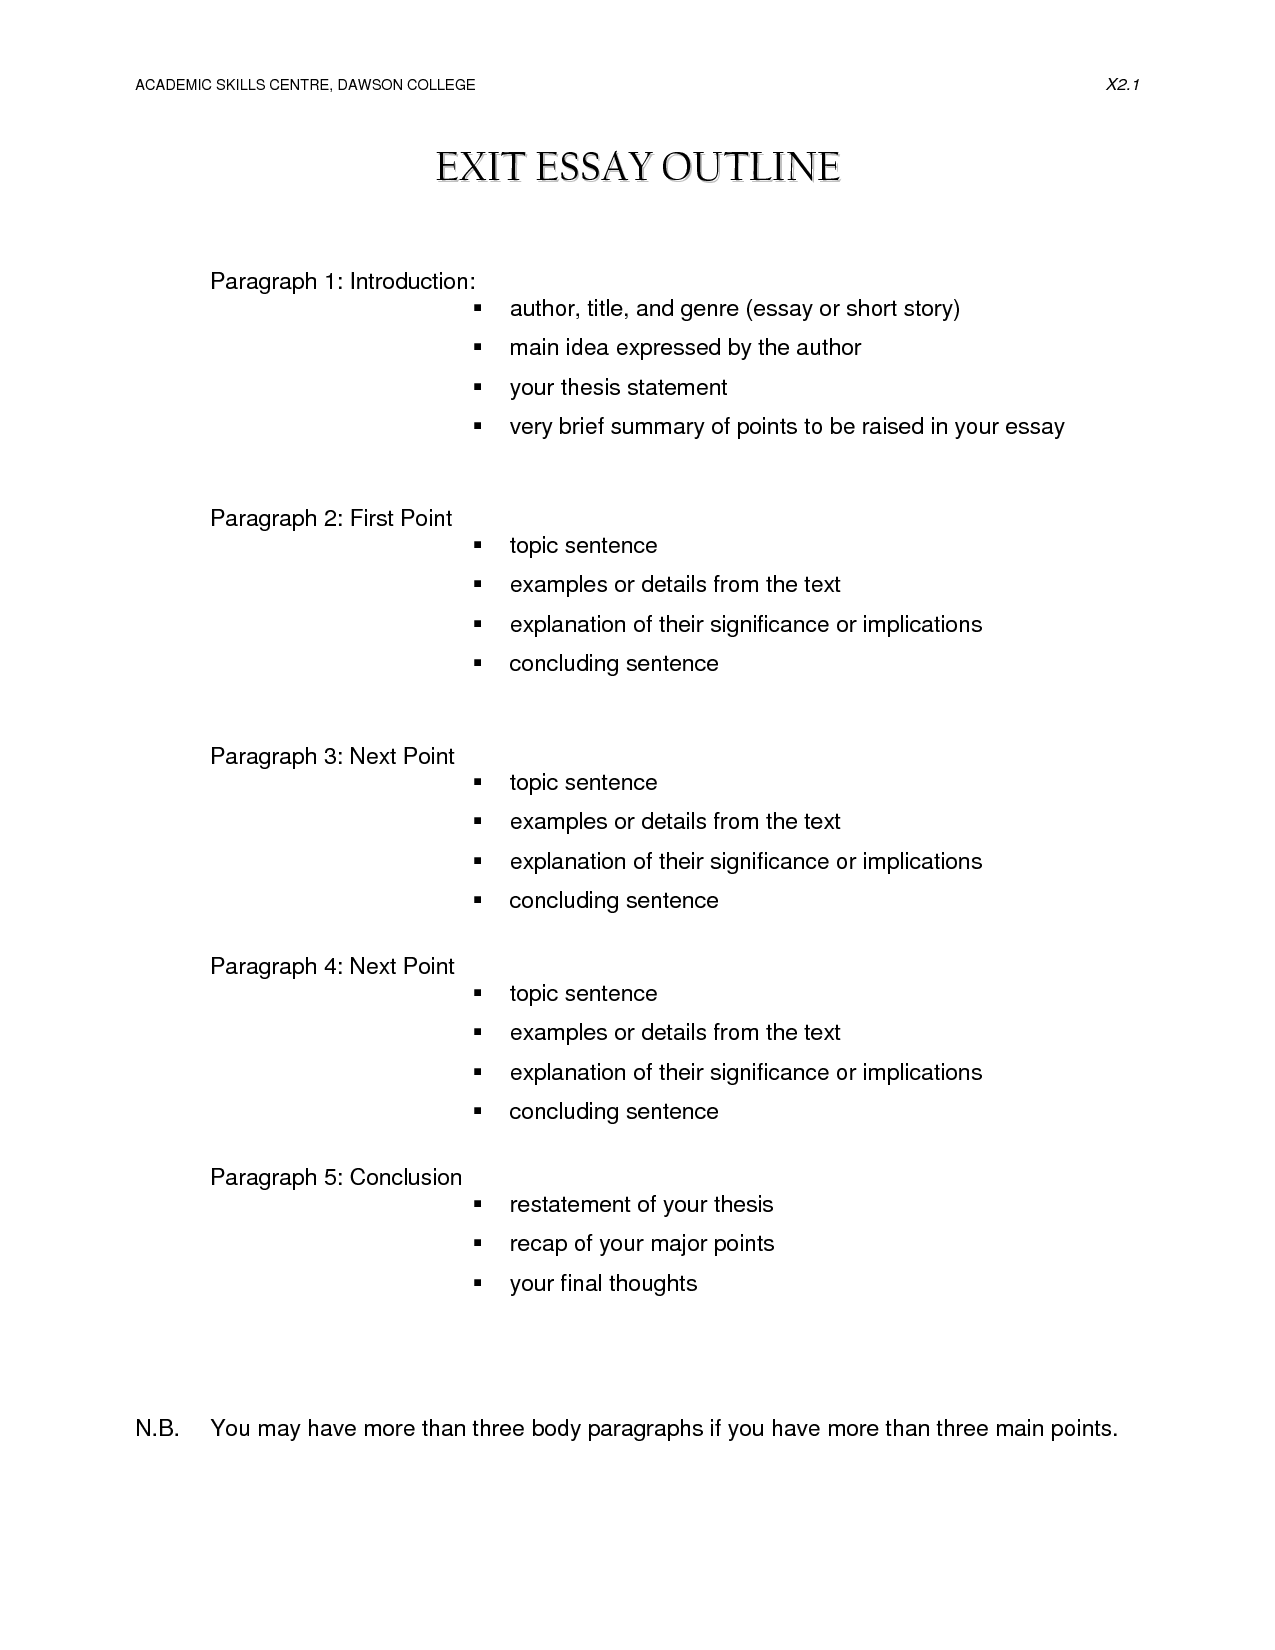 Research Paper Format Outline Google Search Academic Pinterest